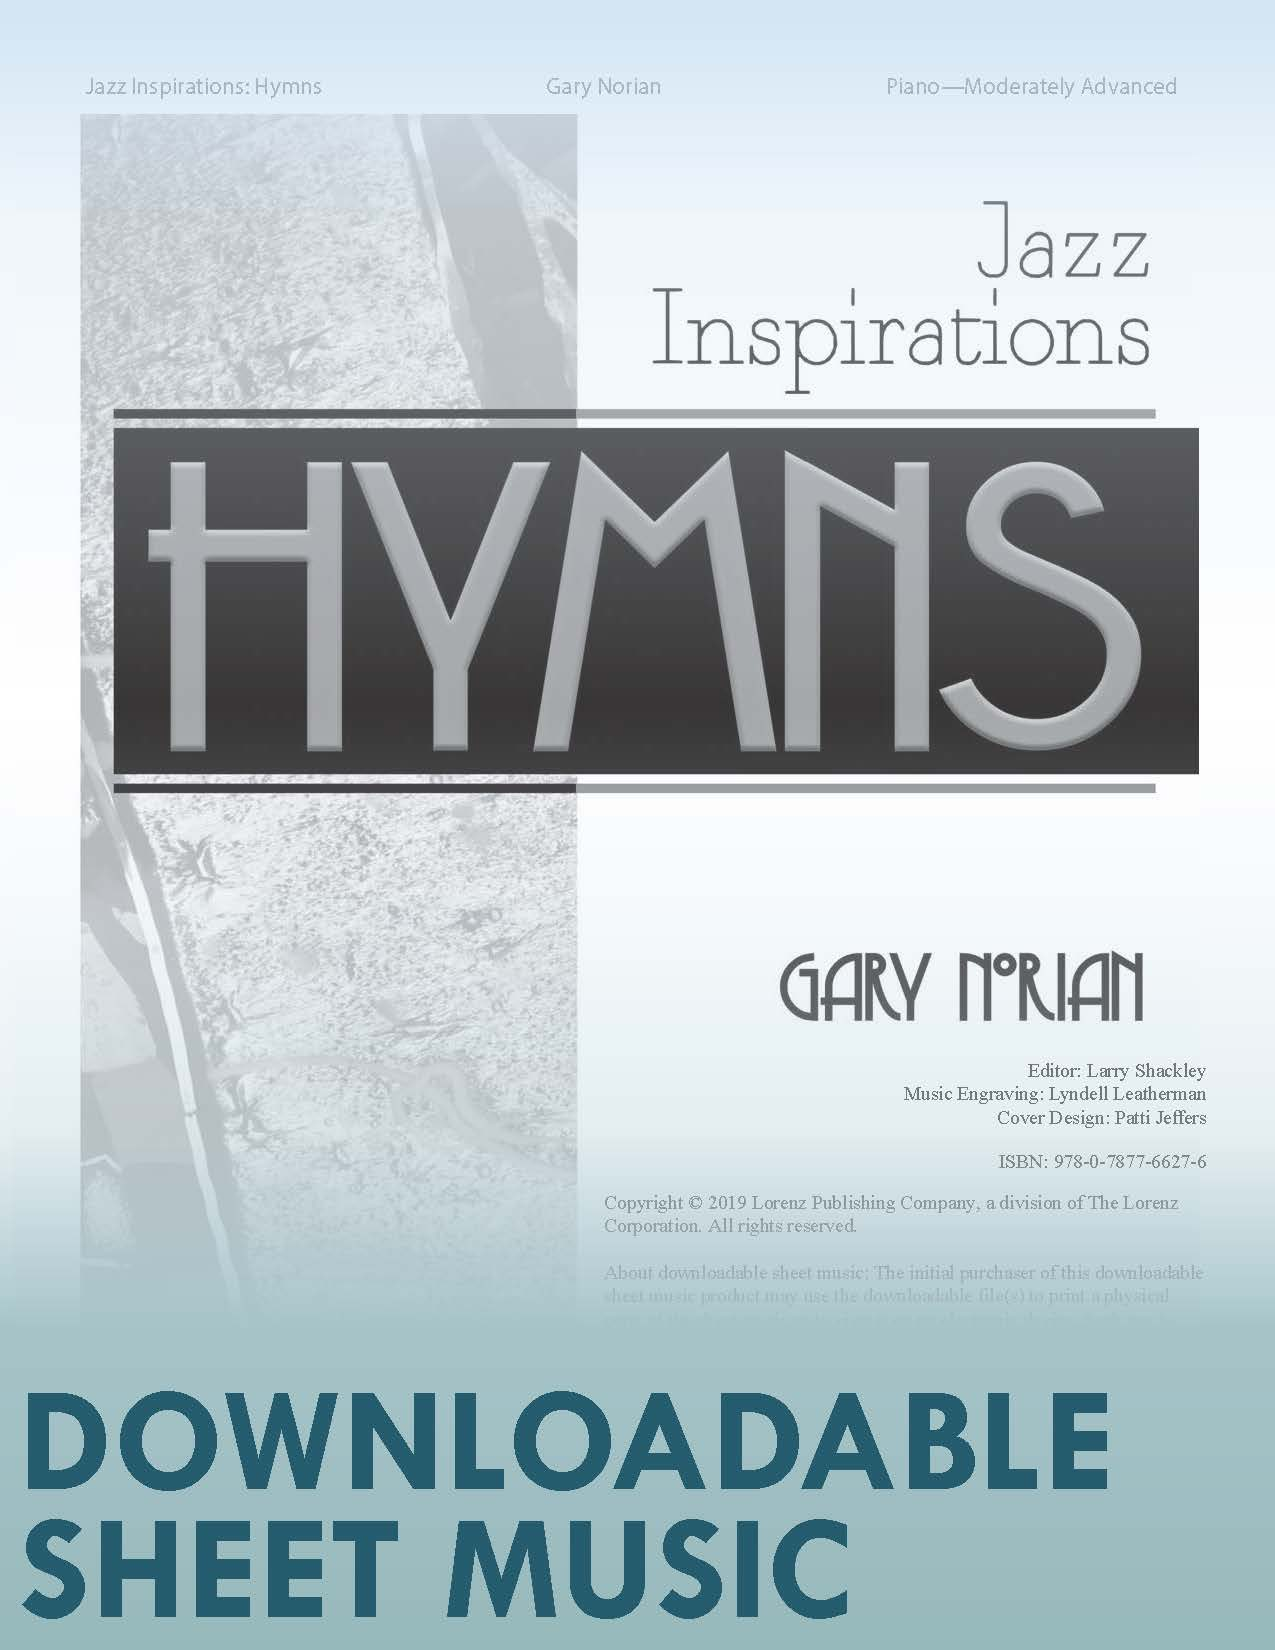 Jazz Inspirations: Hymns - Digital Download